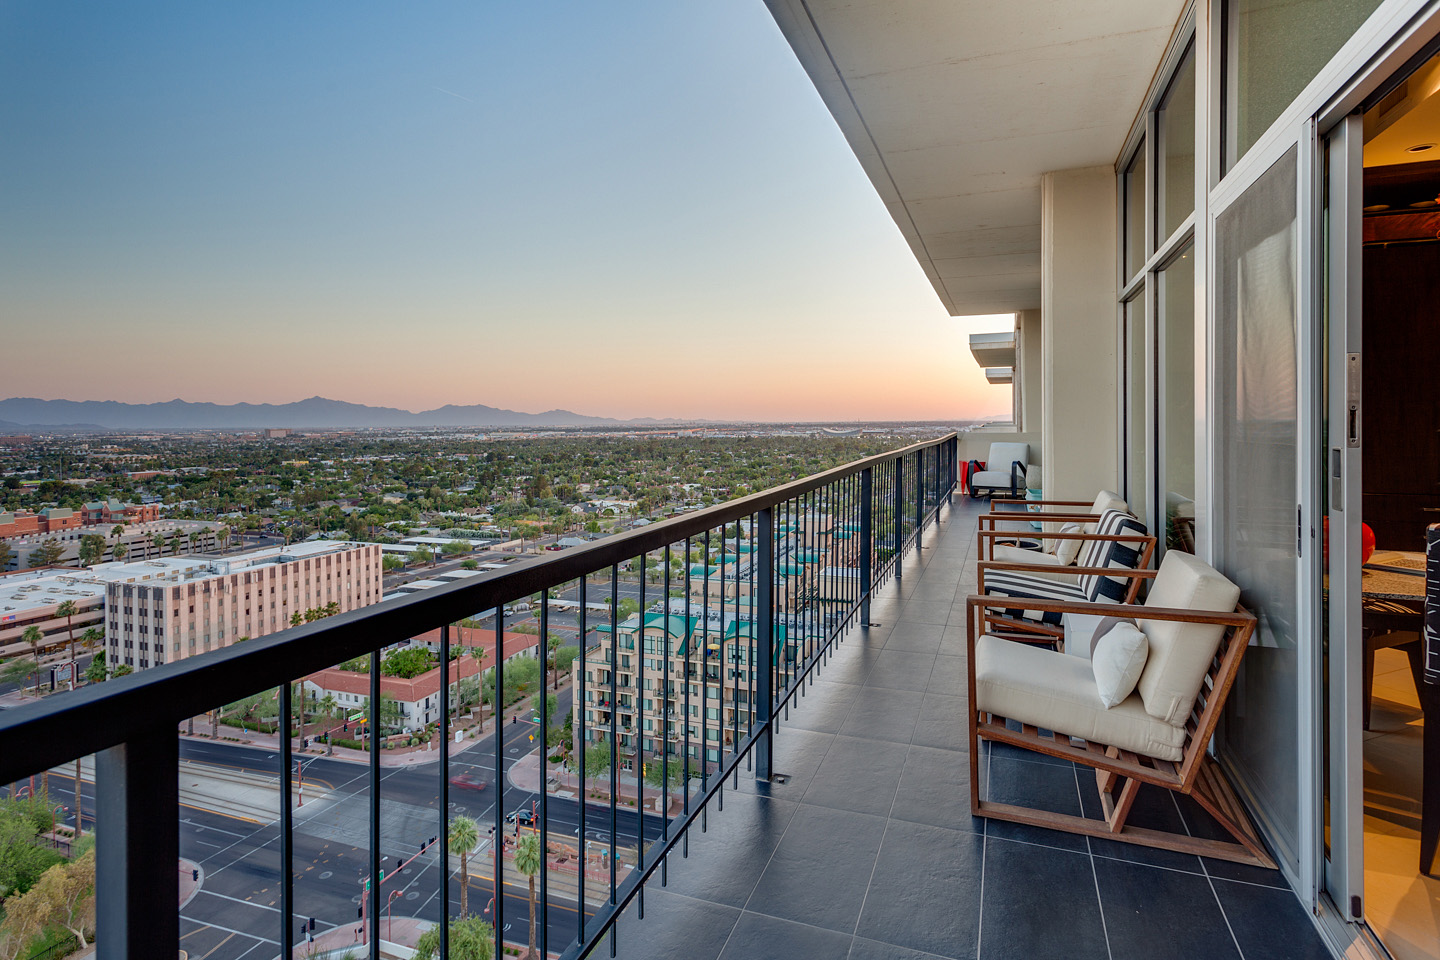 2323-N-Central-Ave-Phoenix-Downtown-Penthouse-54.jpg